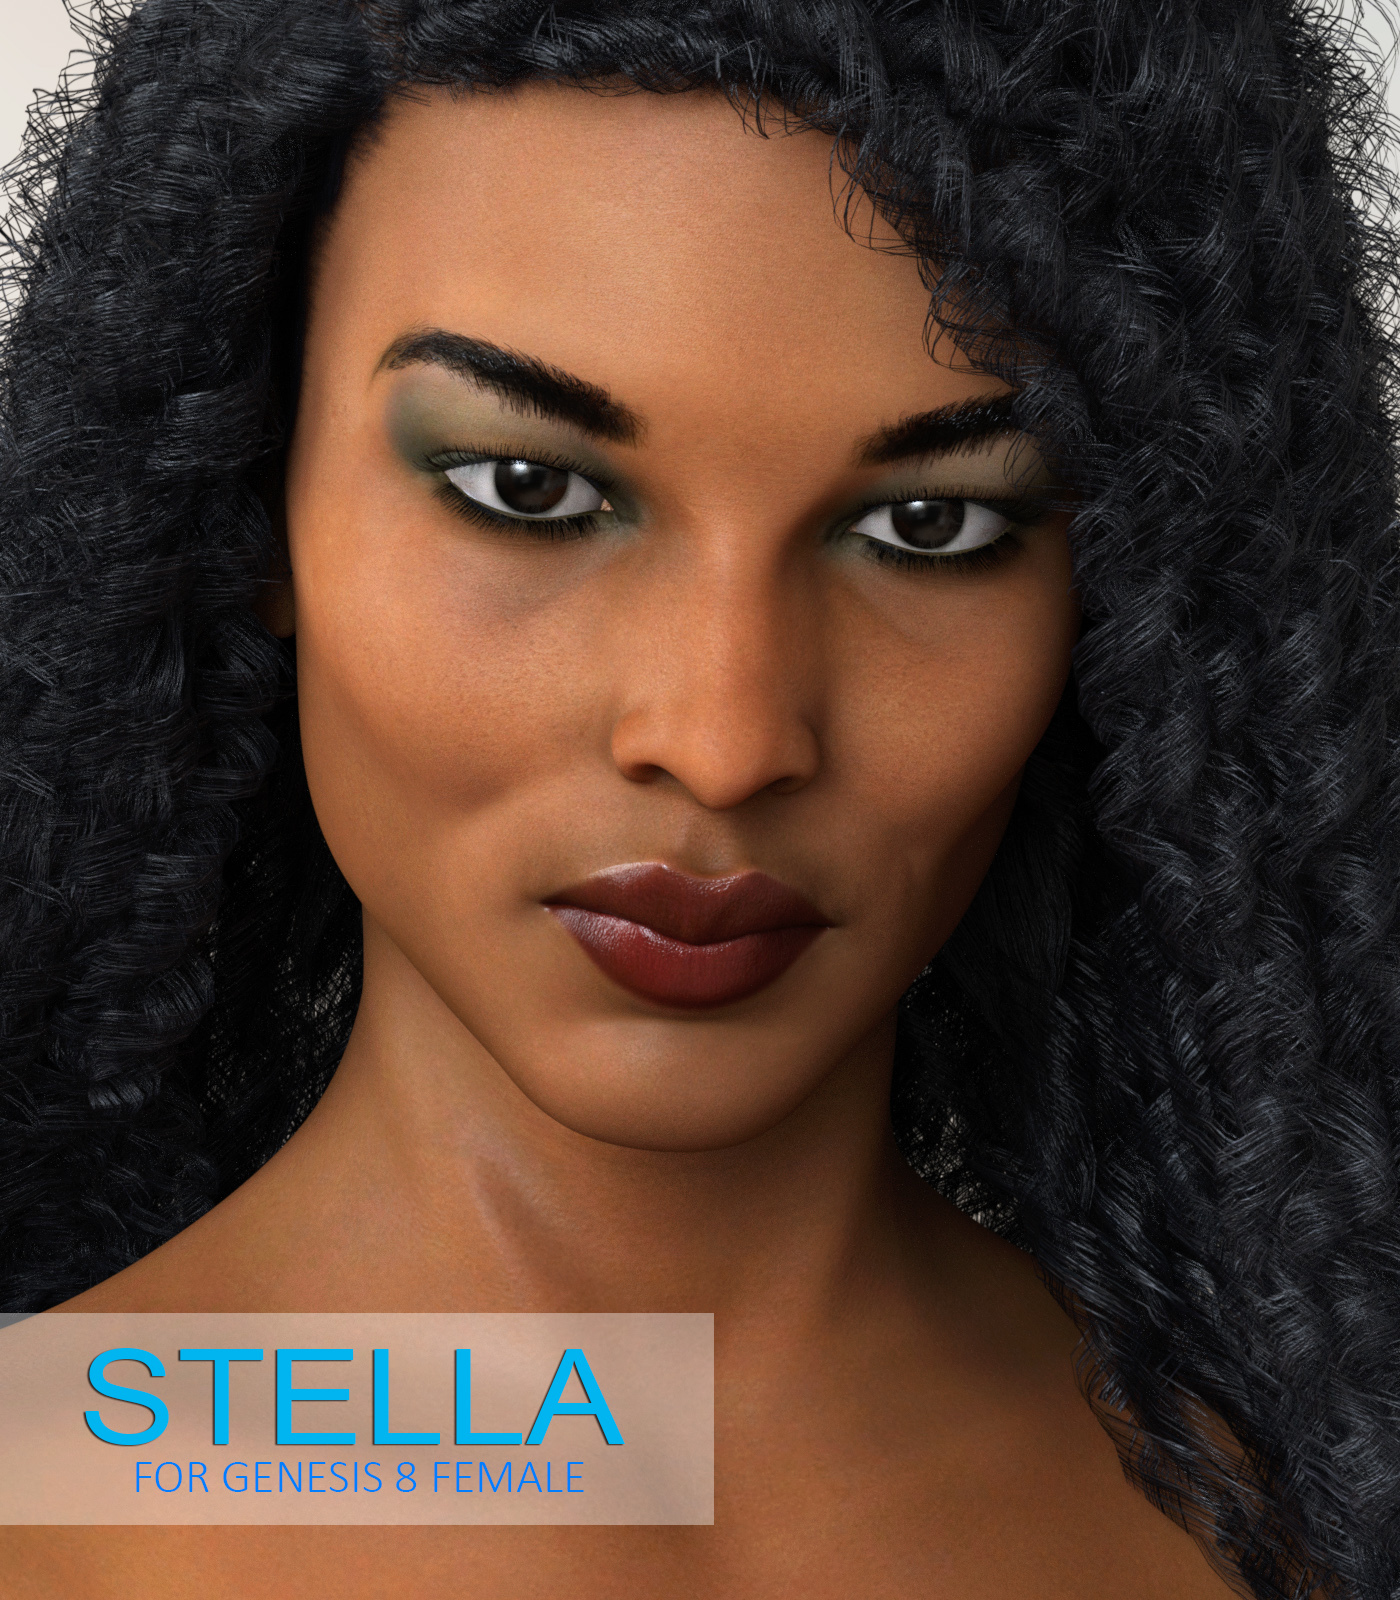 Stella For Genesis 8 Female